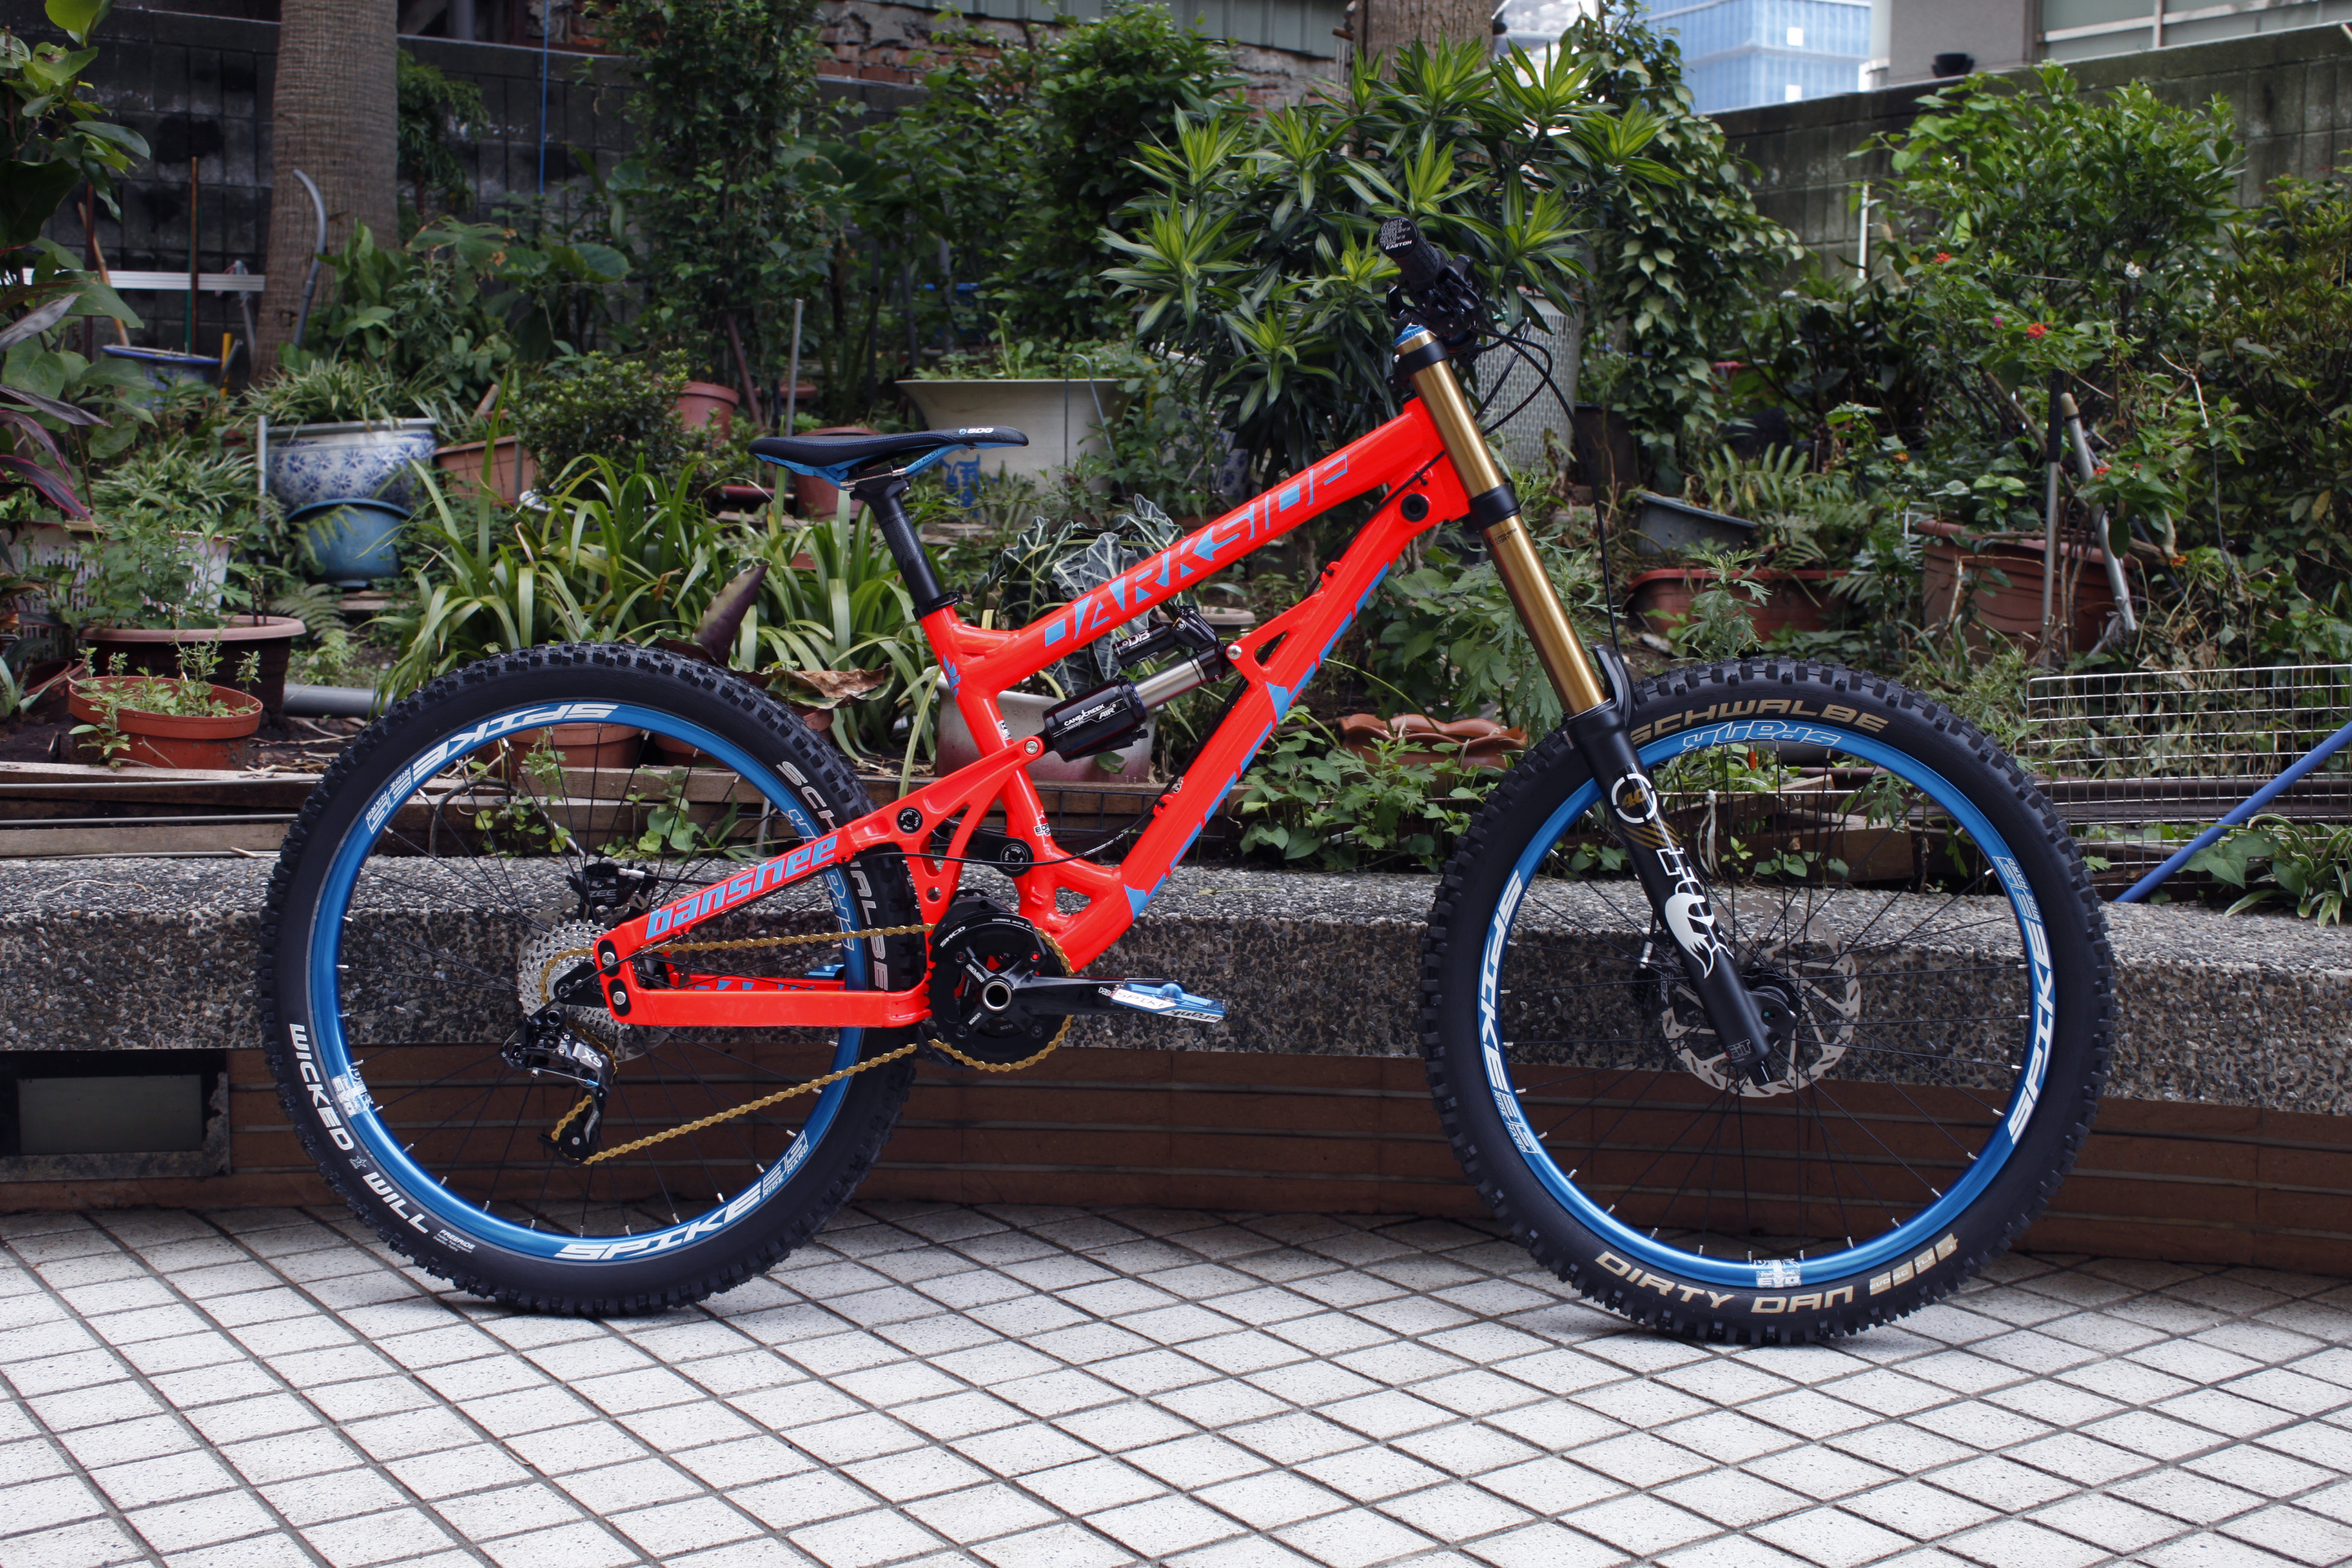 Banshee Darkside Neon Orange Blue Dirtybikes S Bike